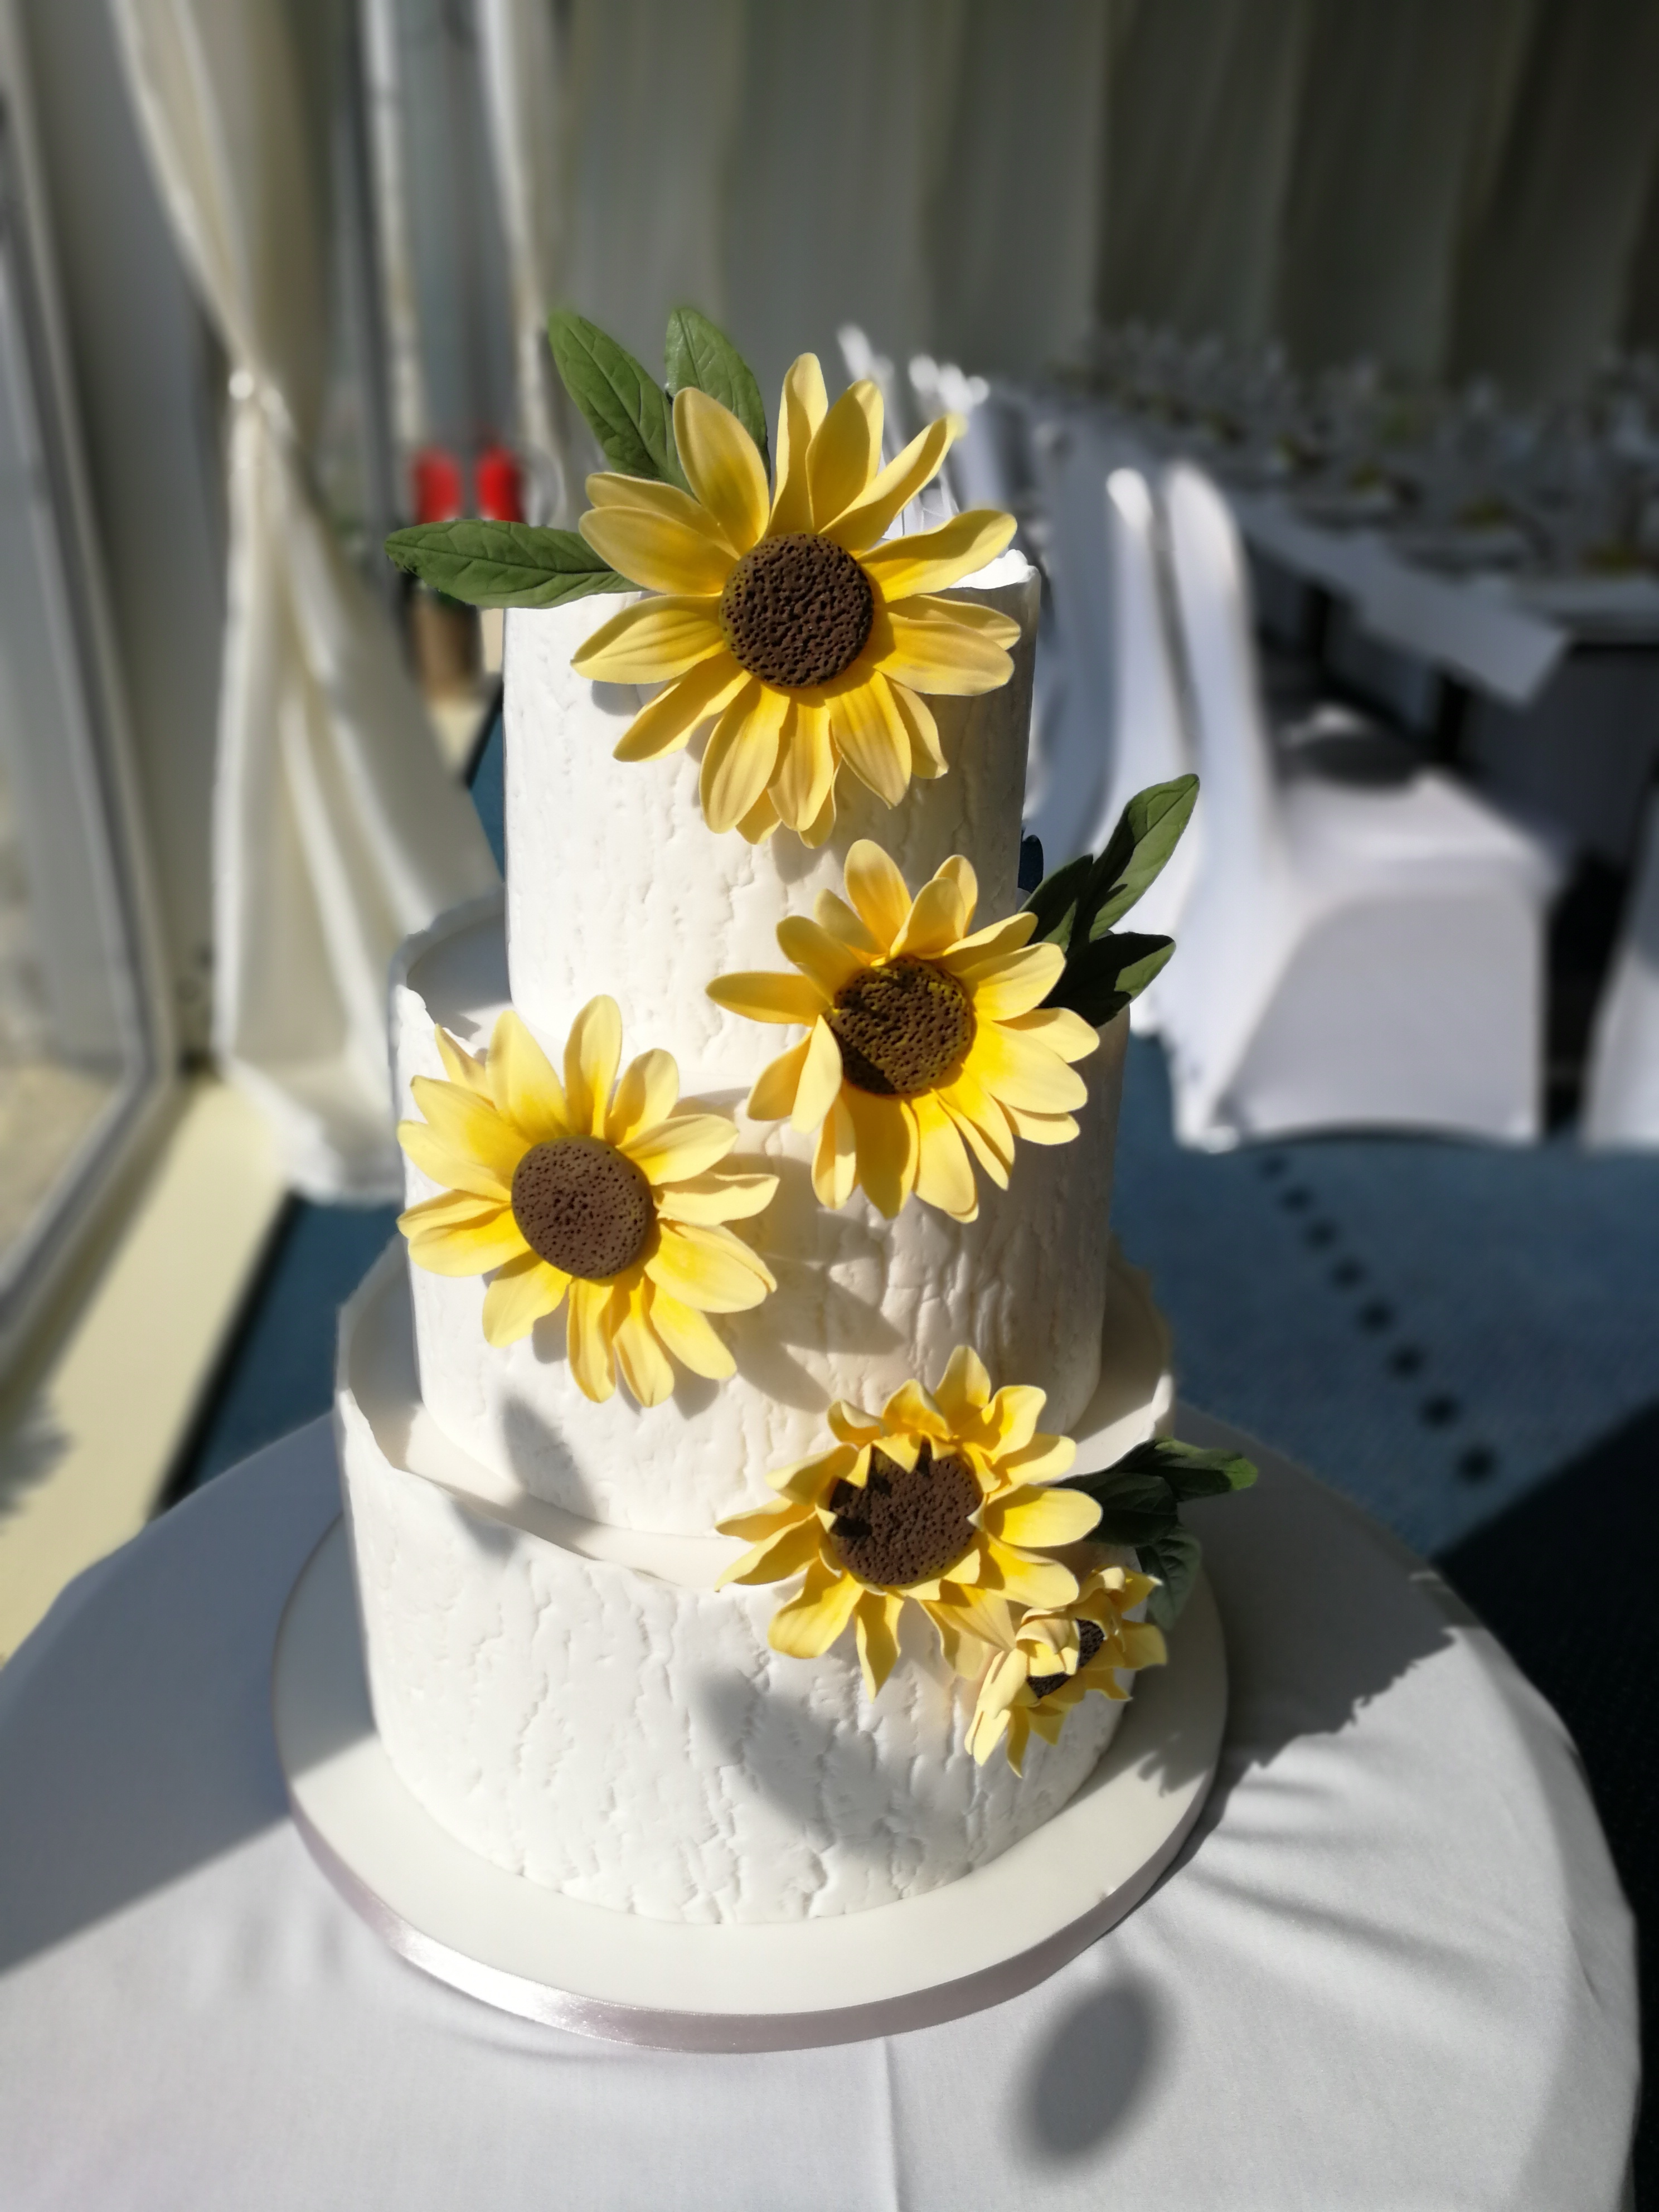 Sunflower wedding cake with wood textured icing